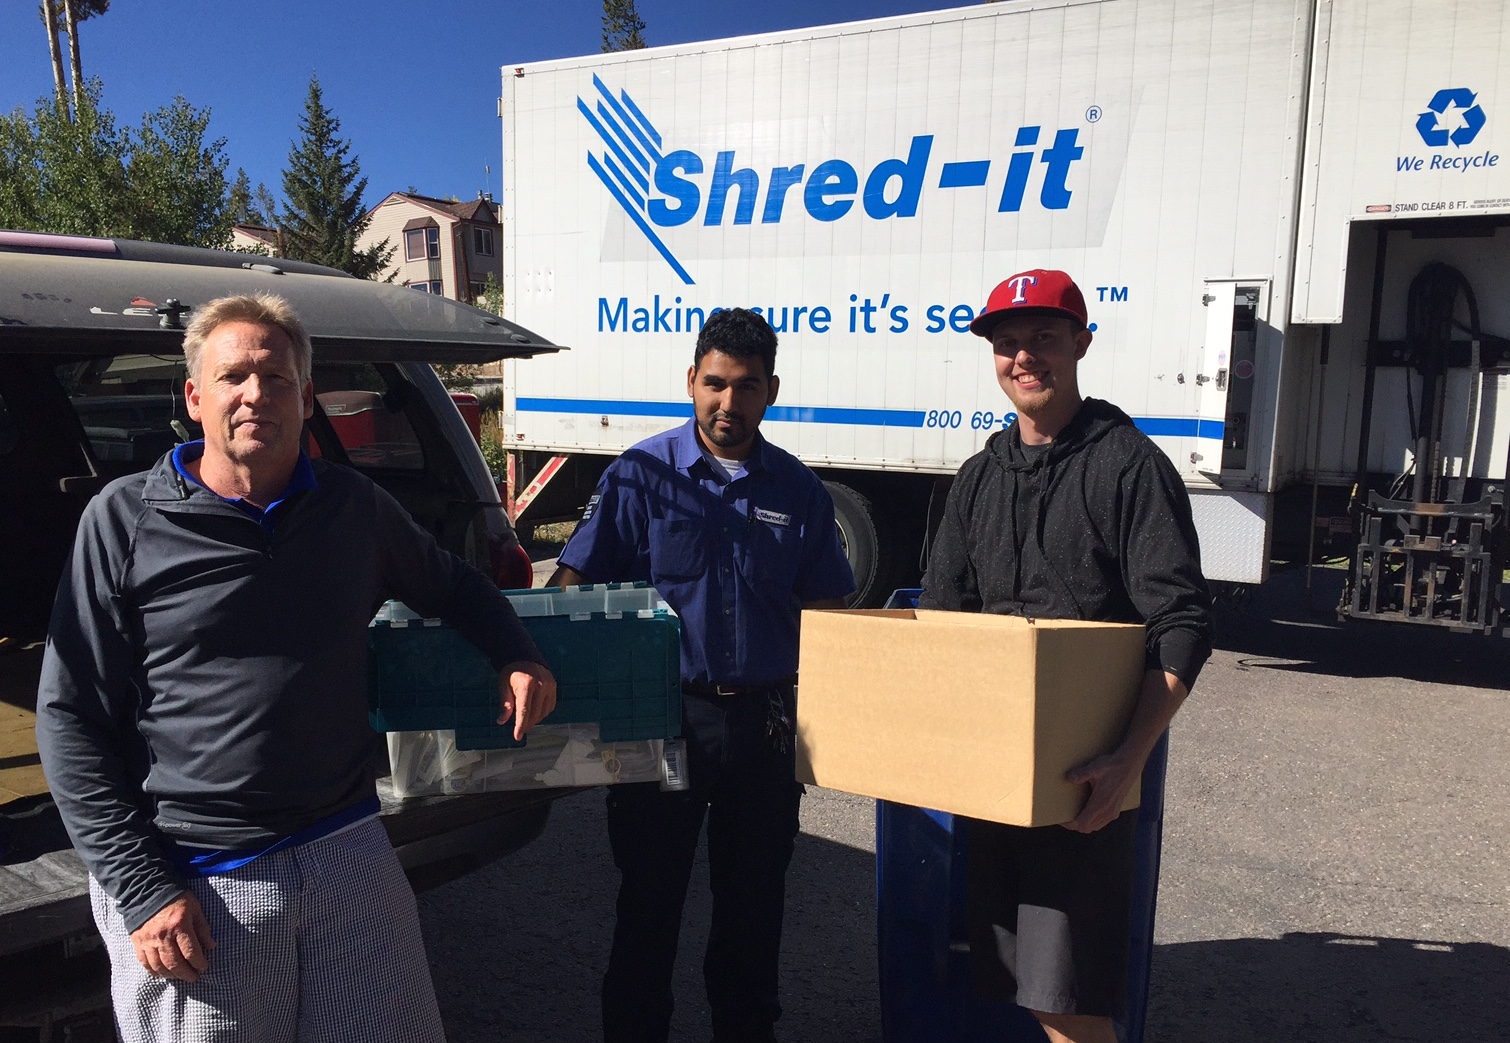 Don Dreher of Fraser, Sam Marquez from Shed-It and Jordan Miller of Real Estate of Winter Park help unload documents to be shredded during the Free Community Shred-It event at the offices of Real Estate of Winter Park.